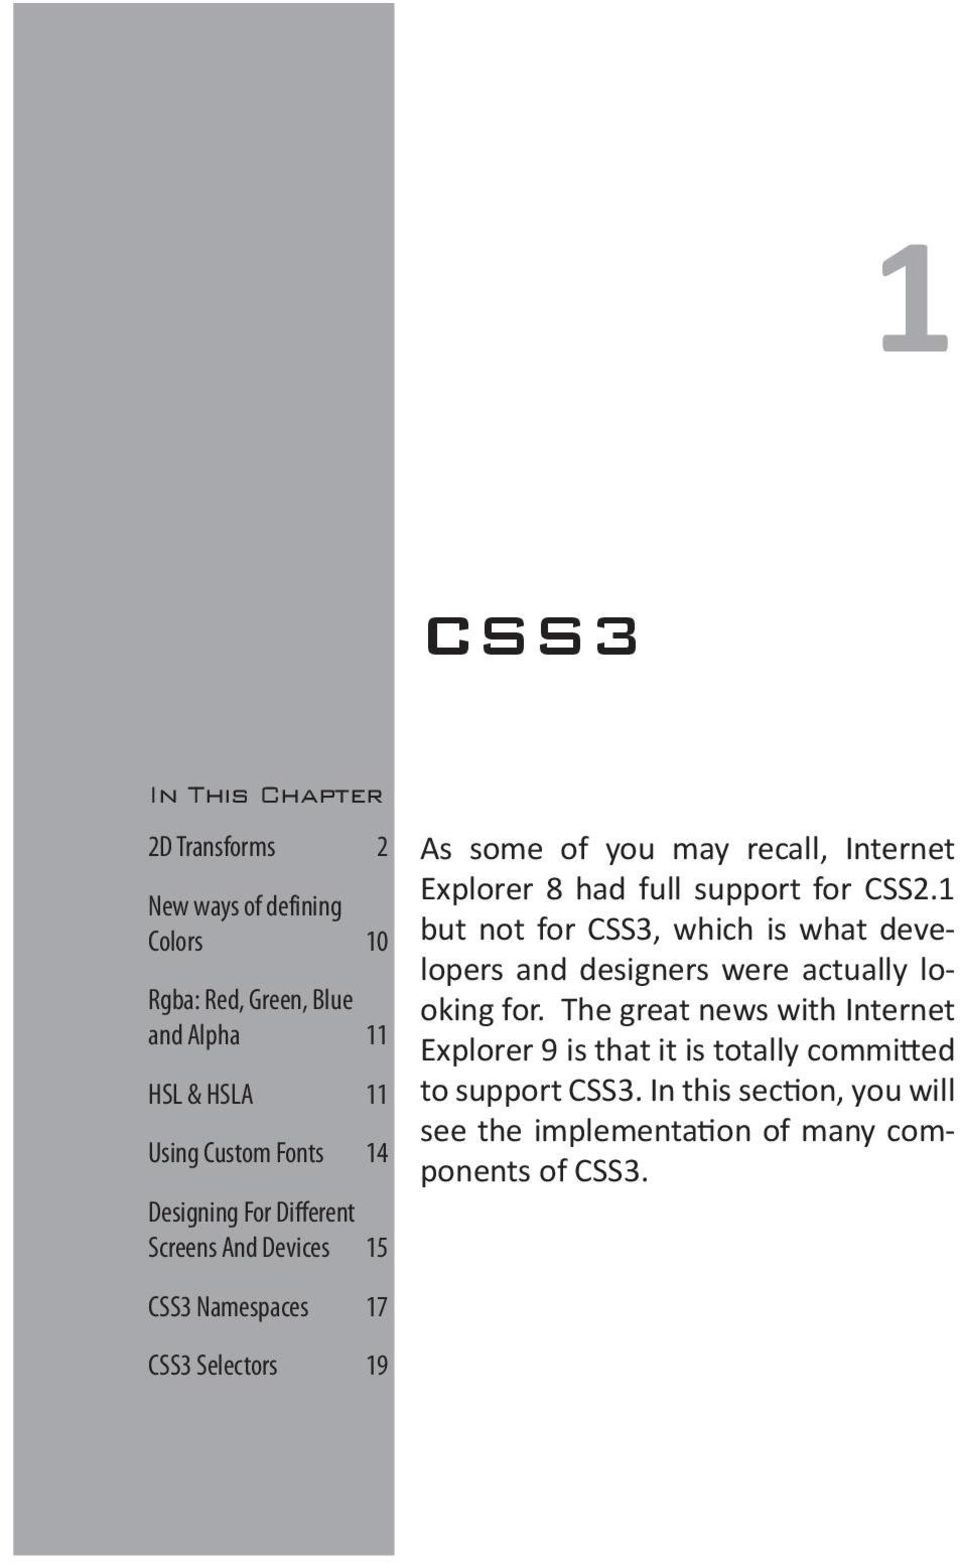 8 had full support for CSS2.1 but not for CSS3, which is what developers and designers were actually looking for.